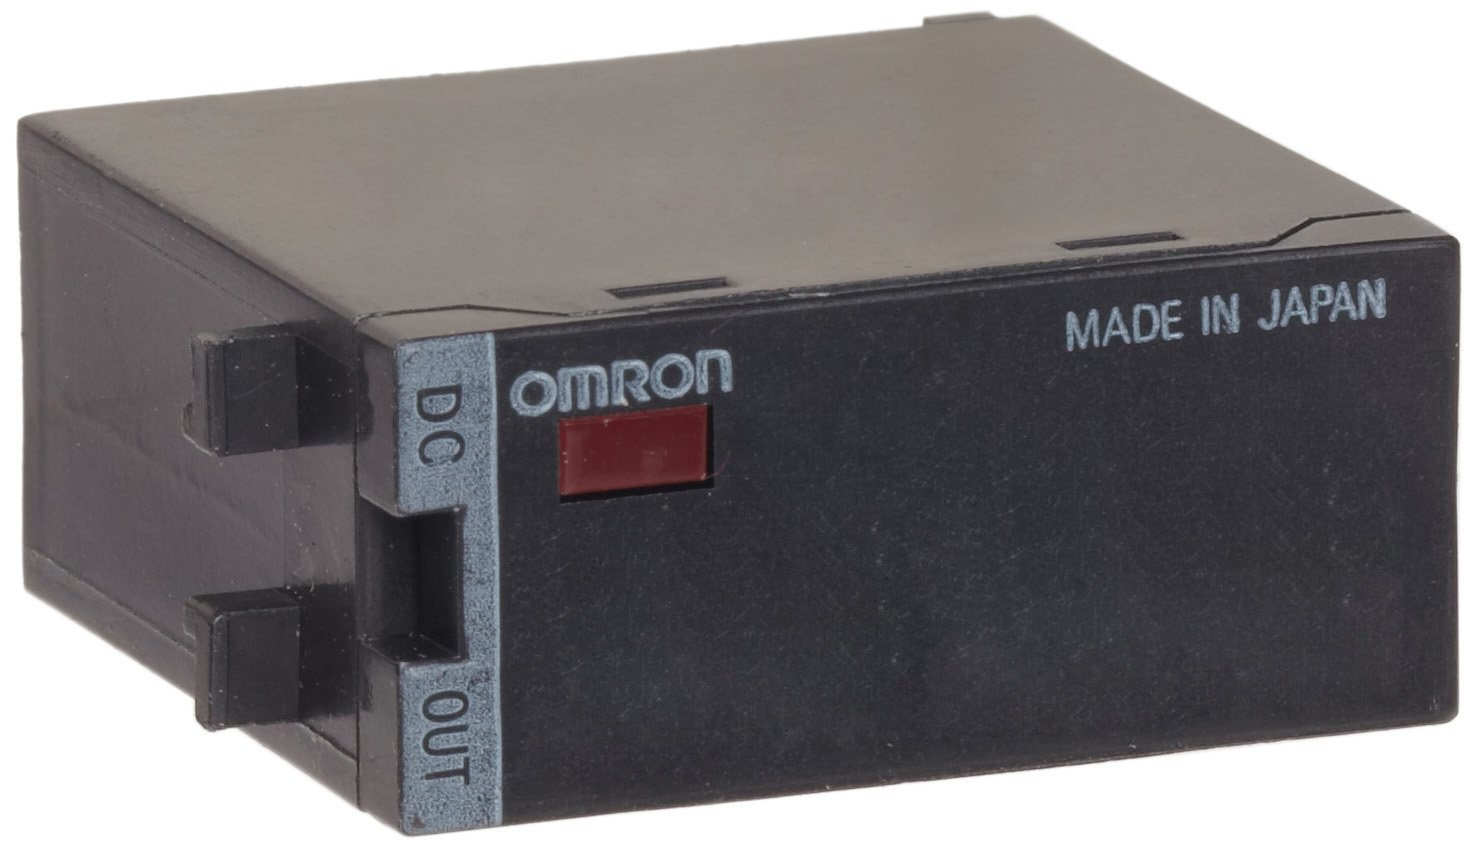 Omron G3R-ODX02SN DC5-24 Solid State Relay, Indicator, Photocoupler Isolation, 2 A Rated Load Current, 5 to 48 VAC Rated Load Voltage, 5 to 24 VDC Input Voltage